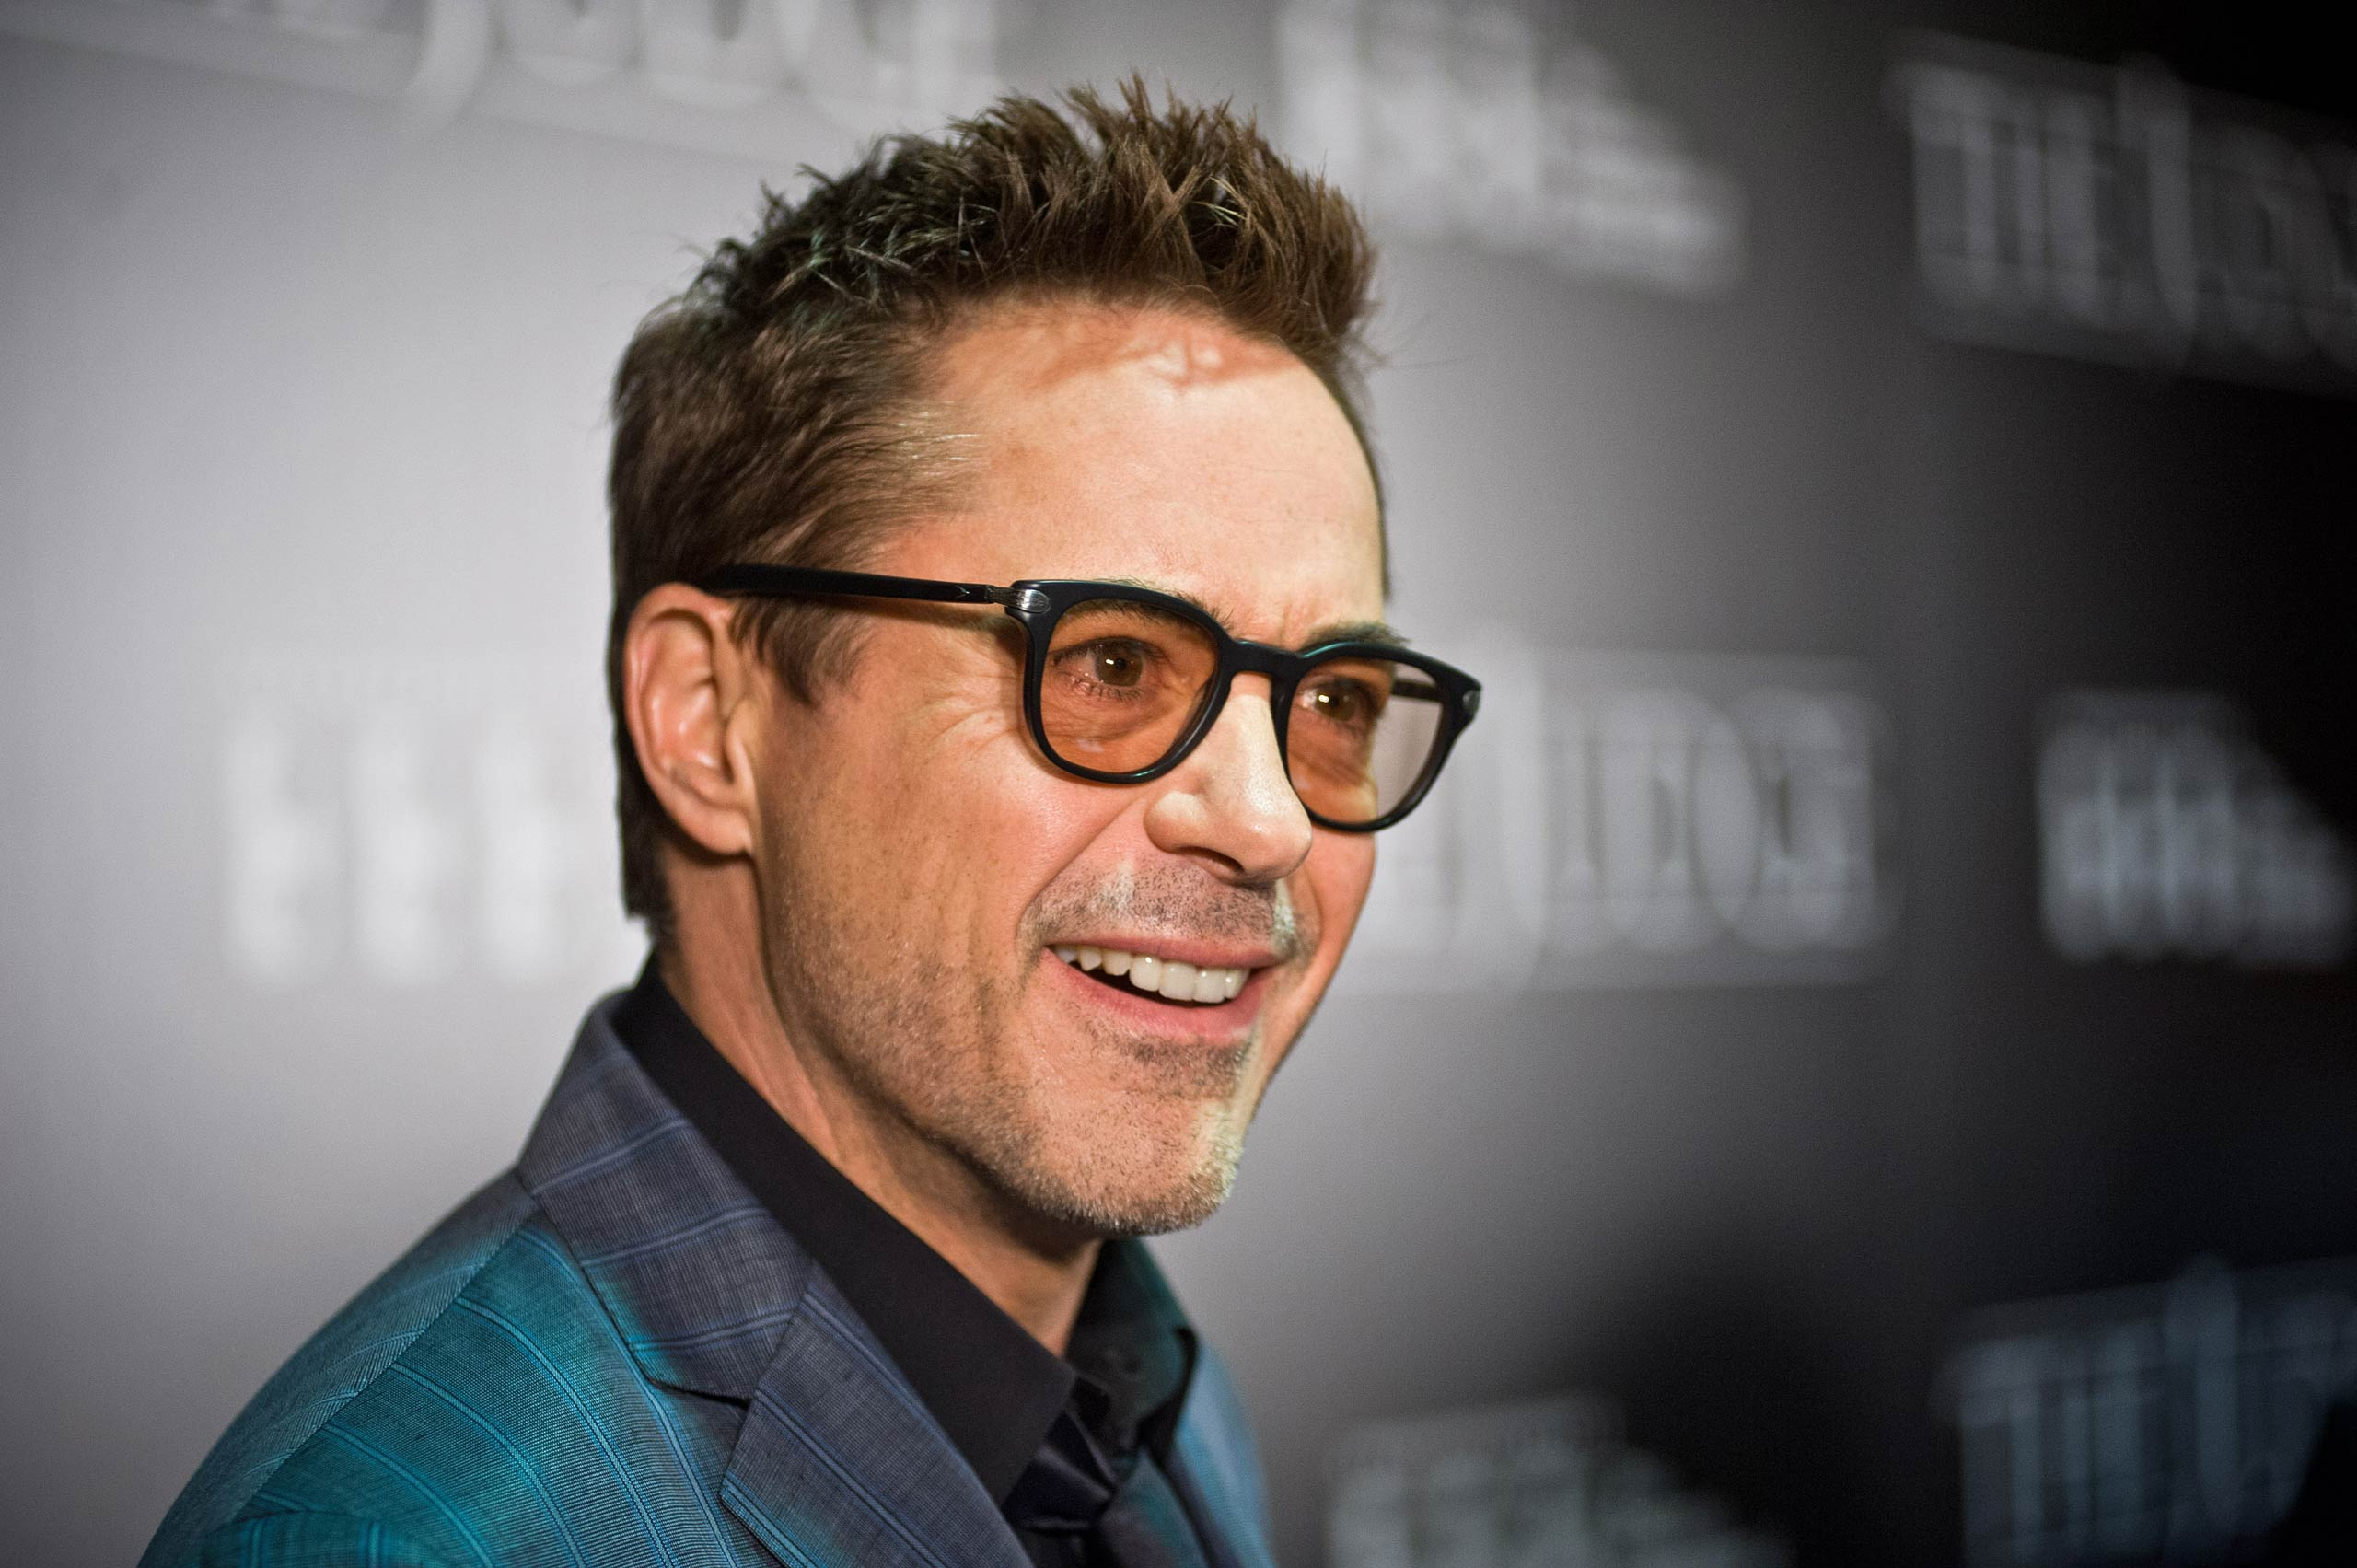 Robert Downey Jr. attends the Chicago premiere of <i>The Judge</i> at AMC River East Theater on Oct. 5, 2014 in Chicago, Ill.